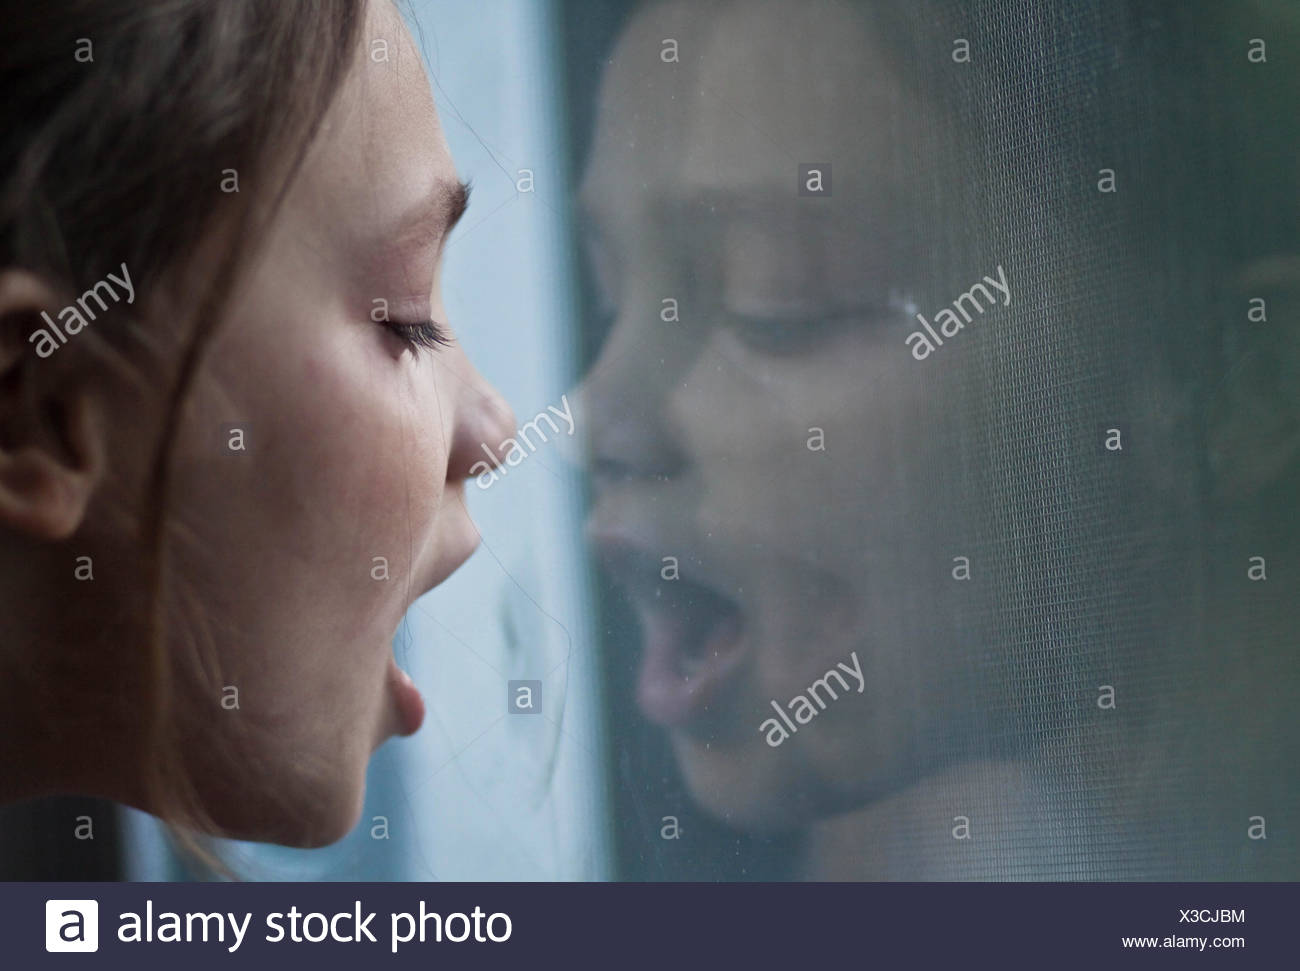 Close-up of girl breathing on window - Stock Image